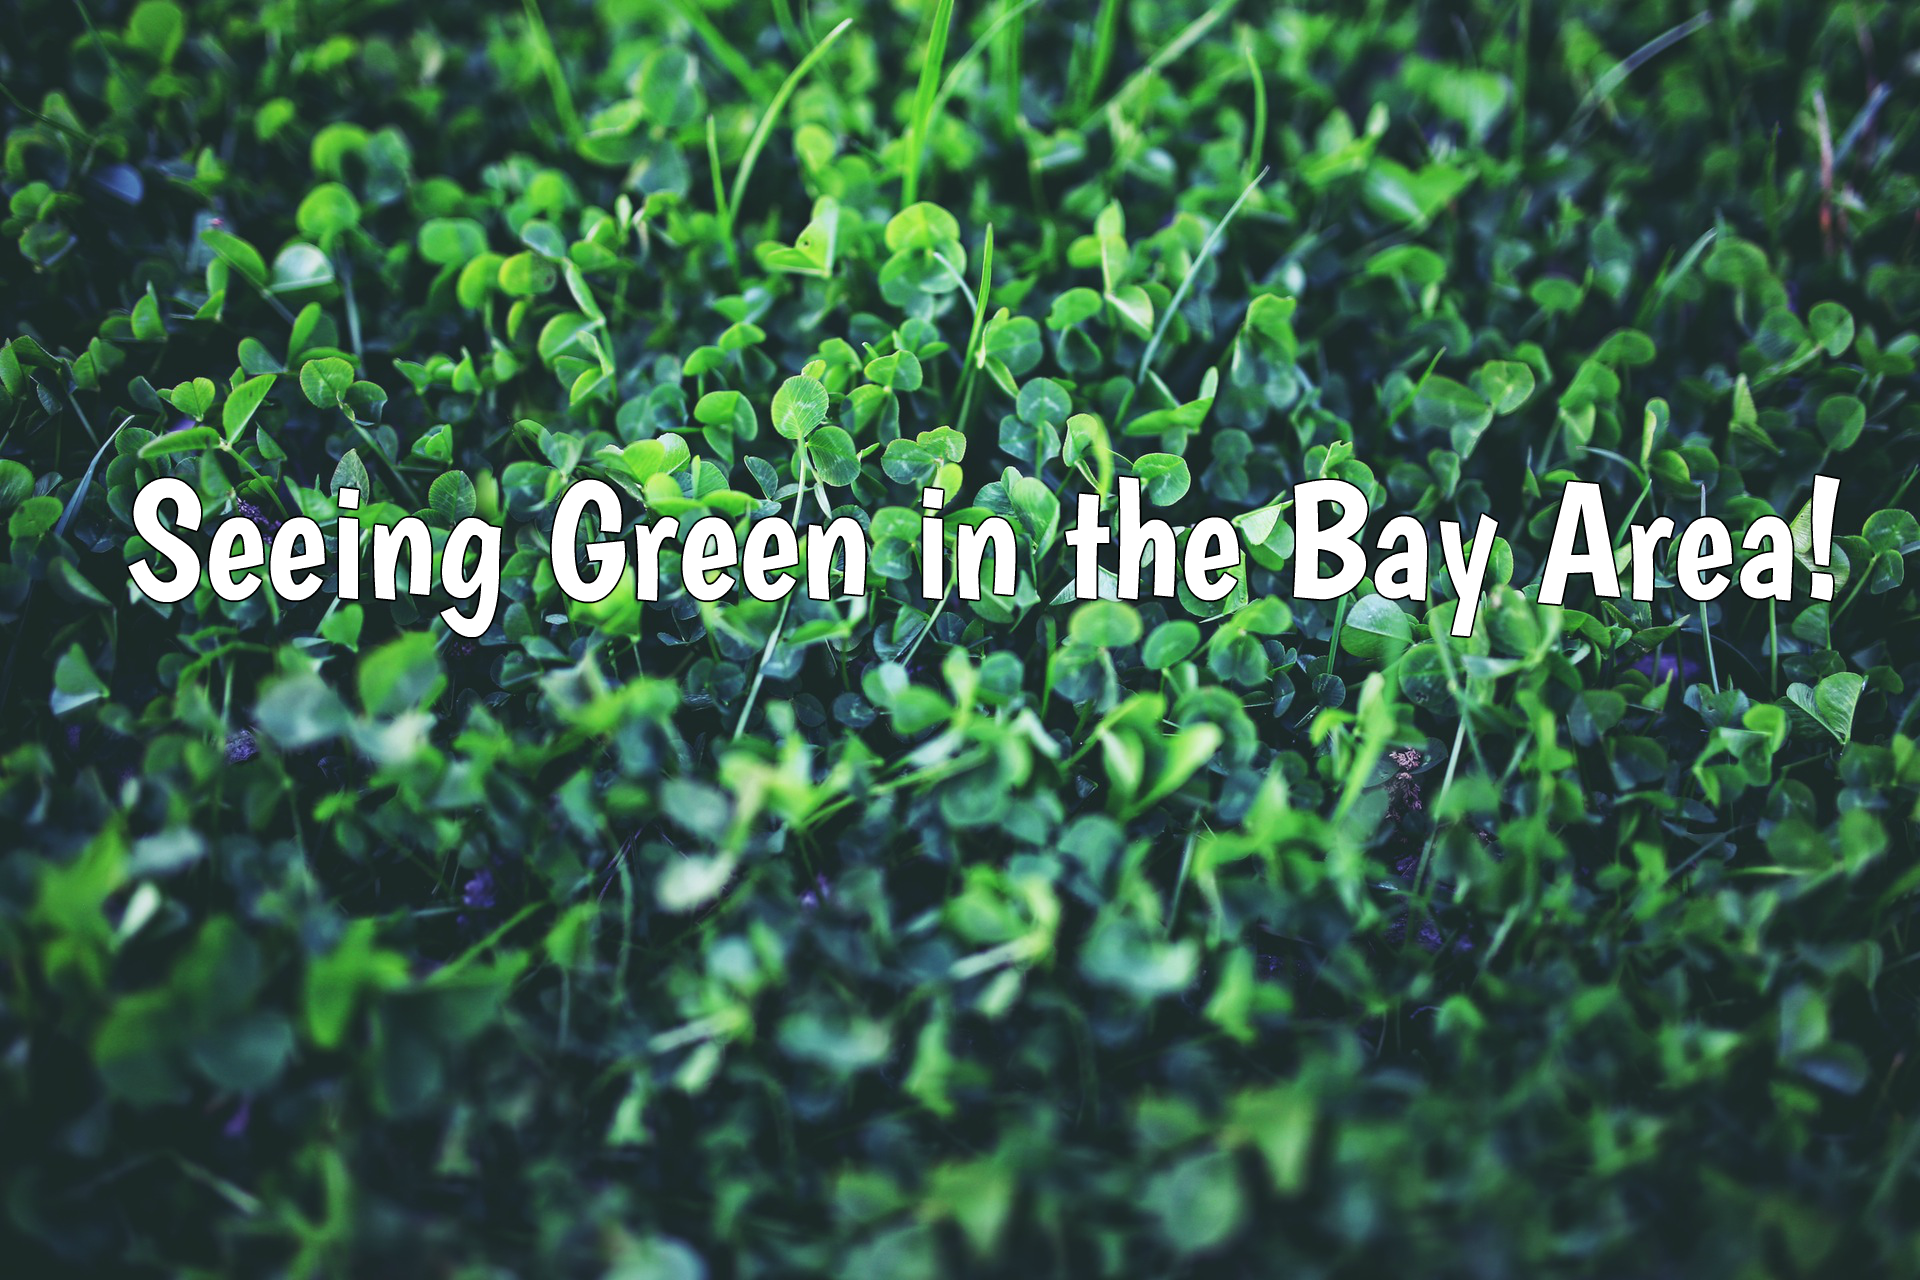 Seeing Green in the Bay Area